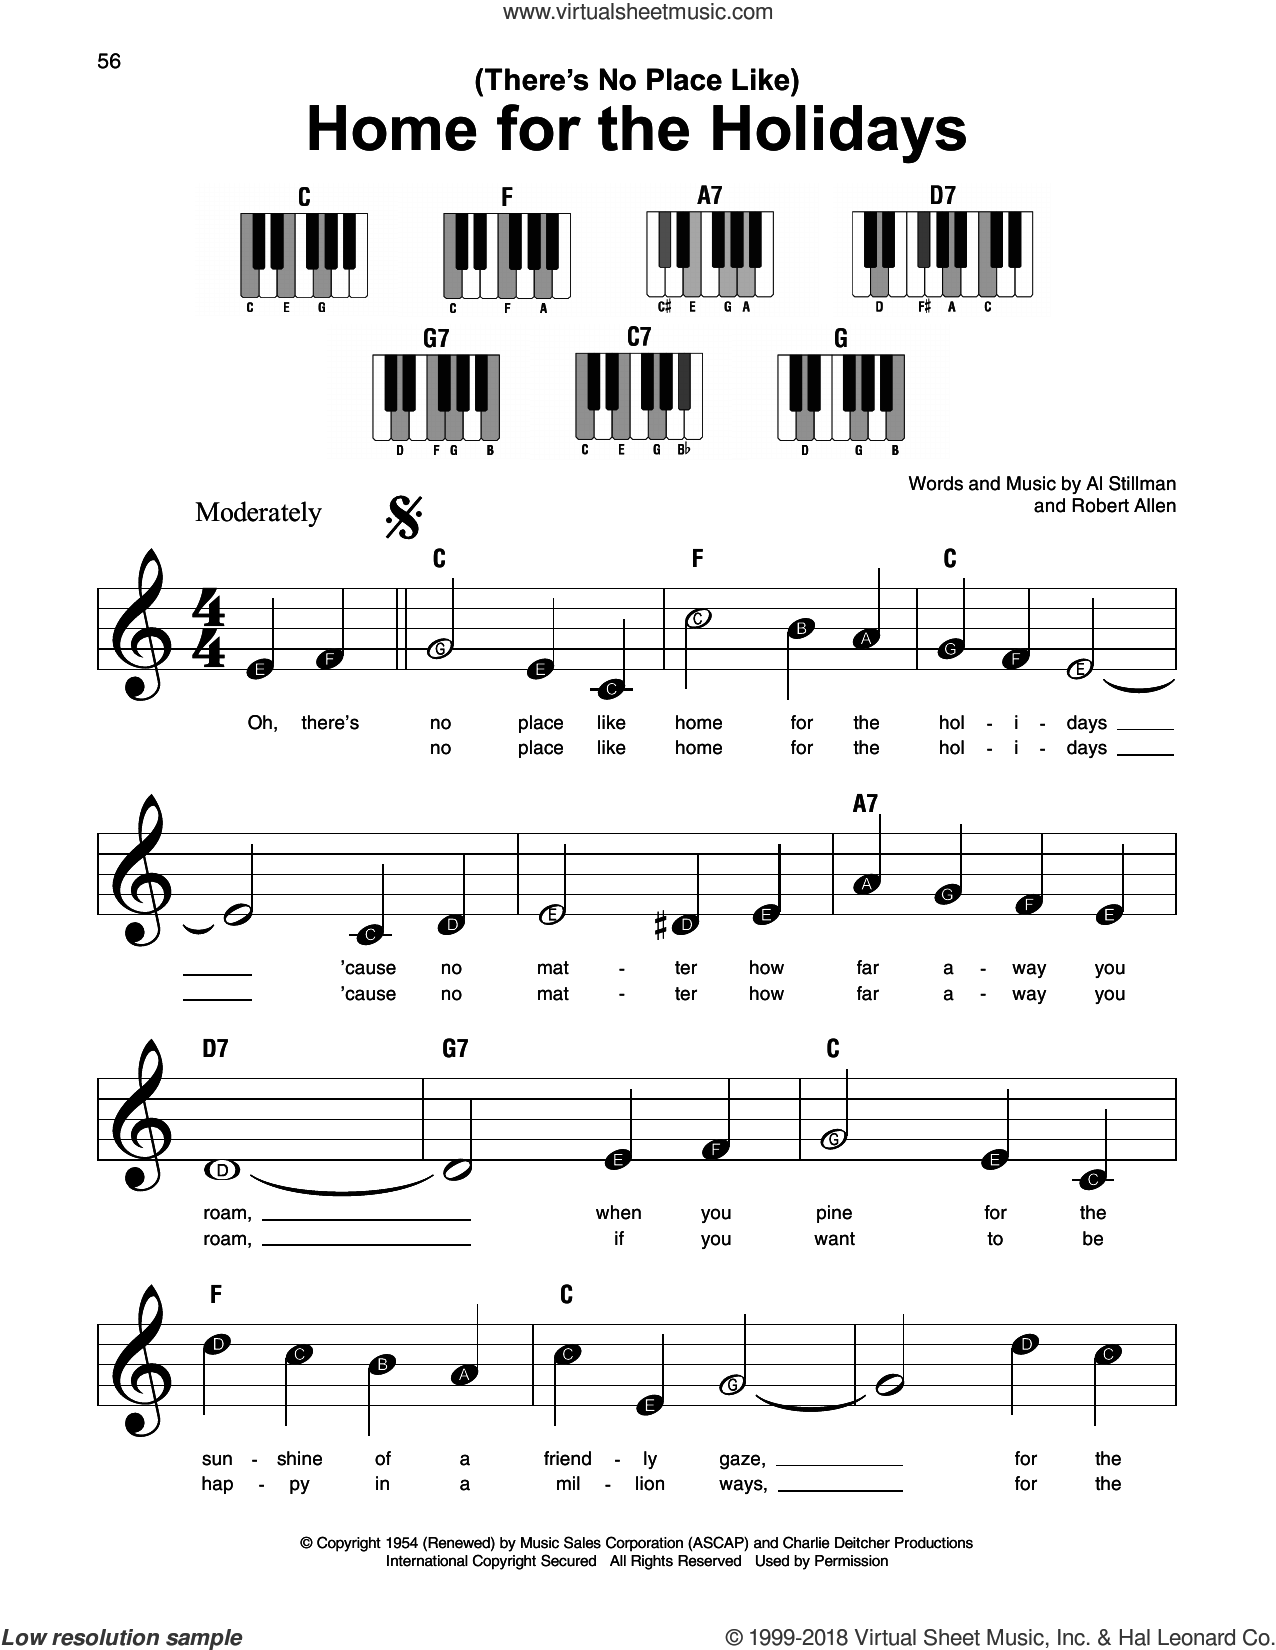 (There's No Place Like) Home For The Holidays sheet music for piano solo by Perry Como, Al Stillman and Robert Allen, beginner skill level